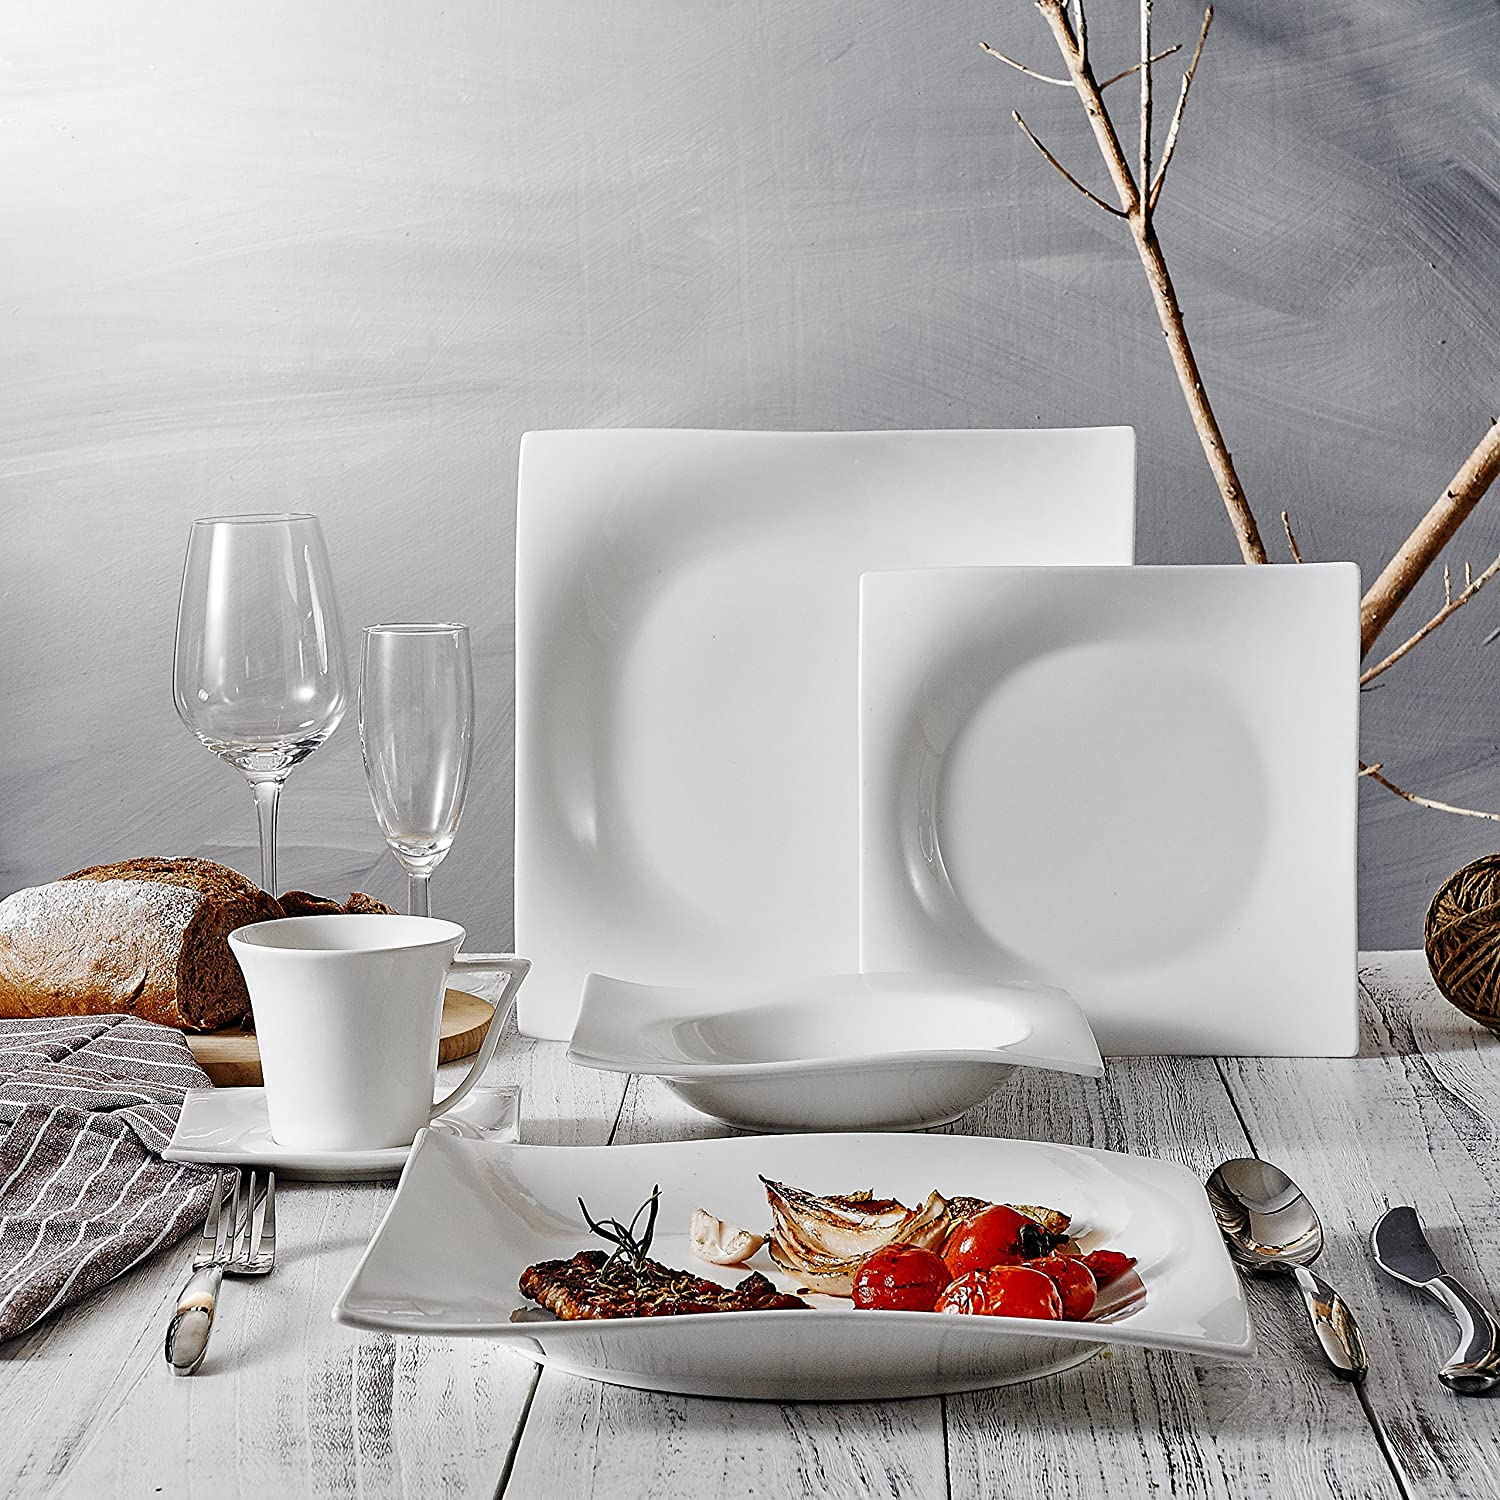 Vancasso 30 Pieces Ivory White Porcelain Dining Service Tableware Set of 6 x Cups//Saucers//Dinner Plates//Dessert Plates//Soup Plates for 6